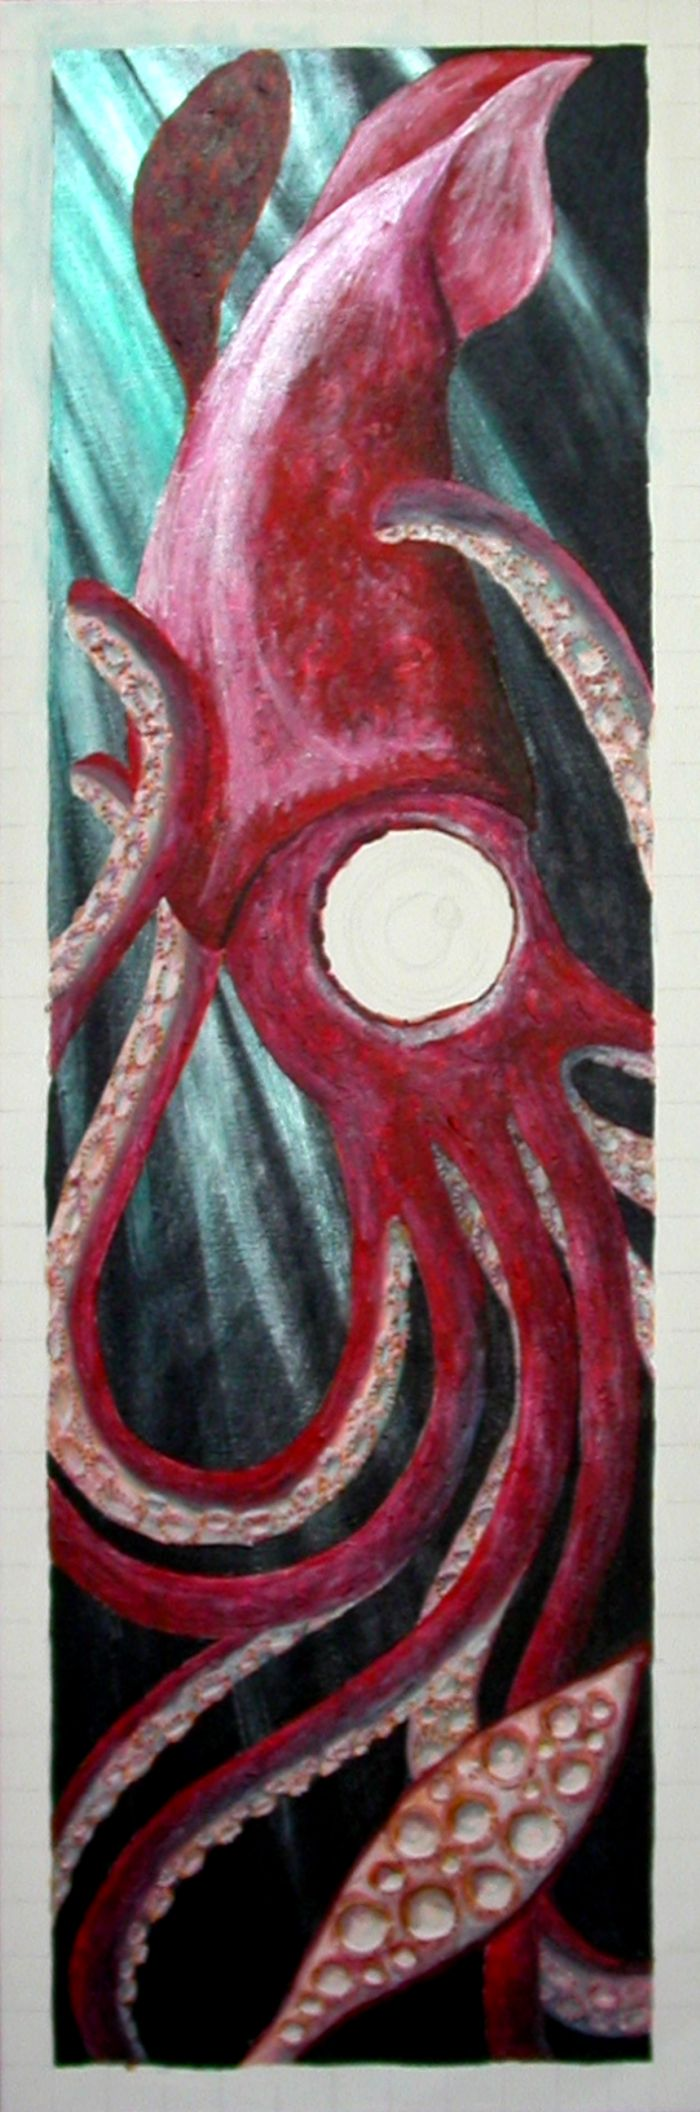 Giant Squid wip5